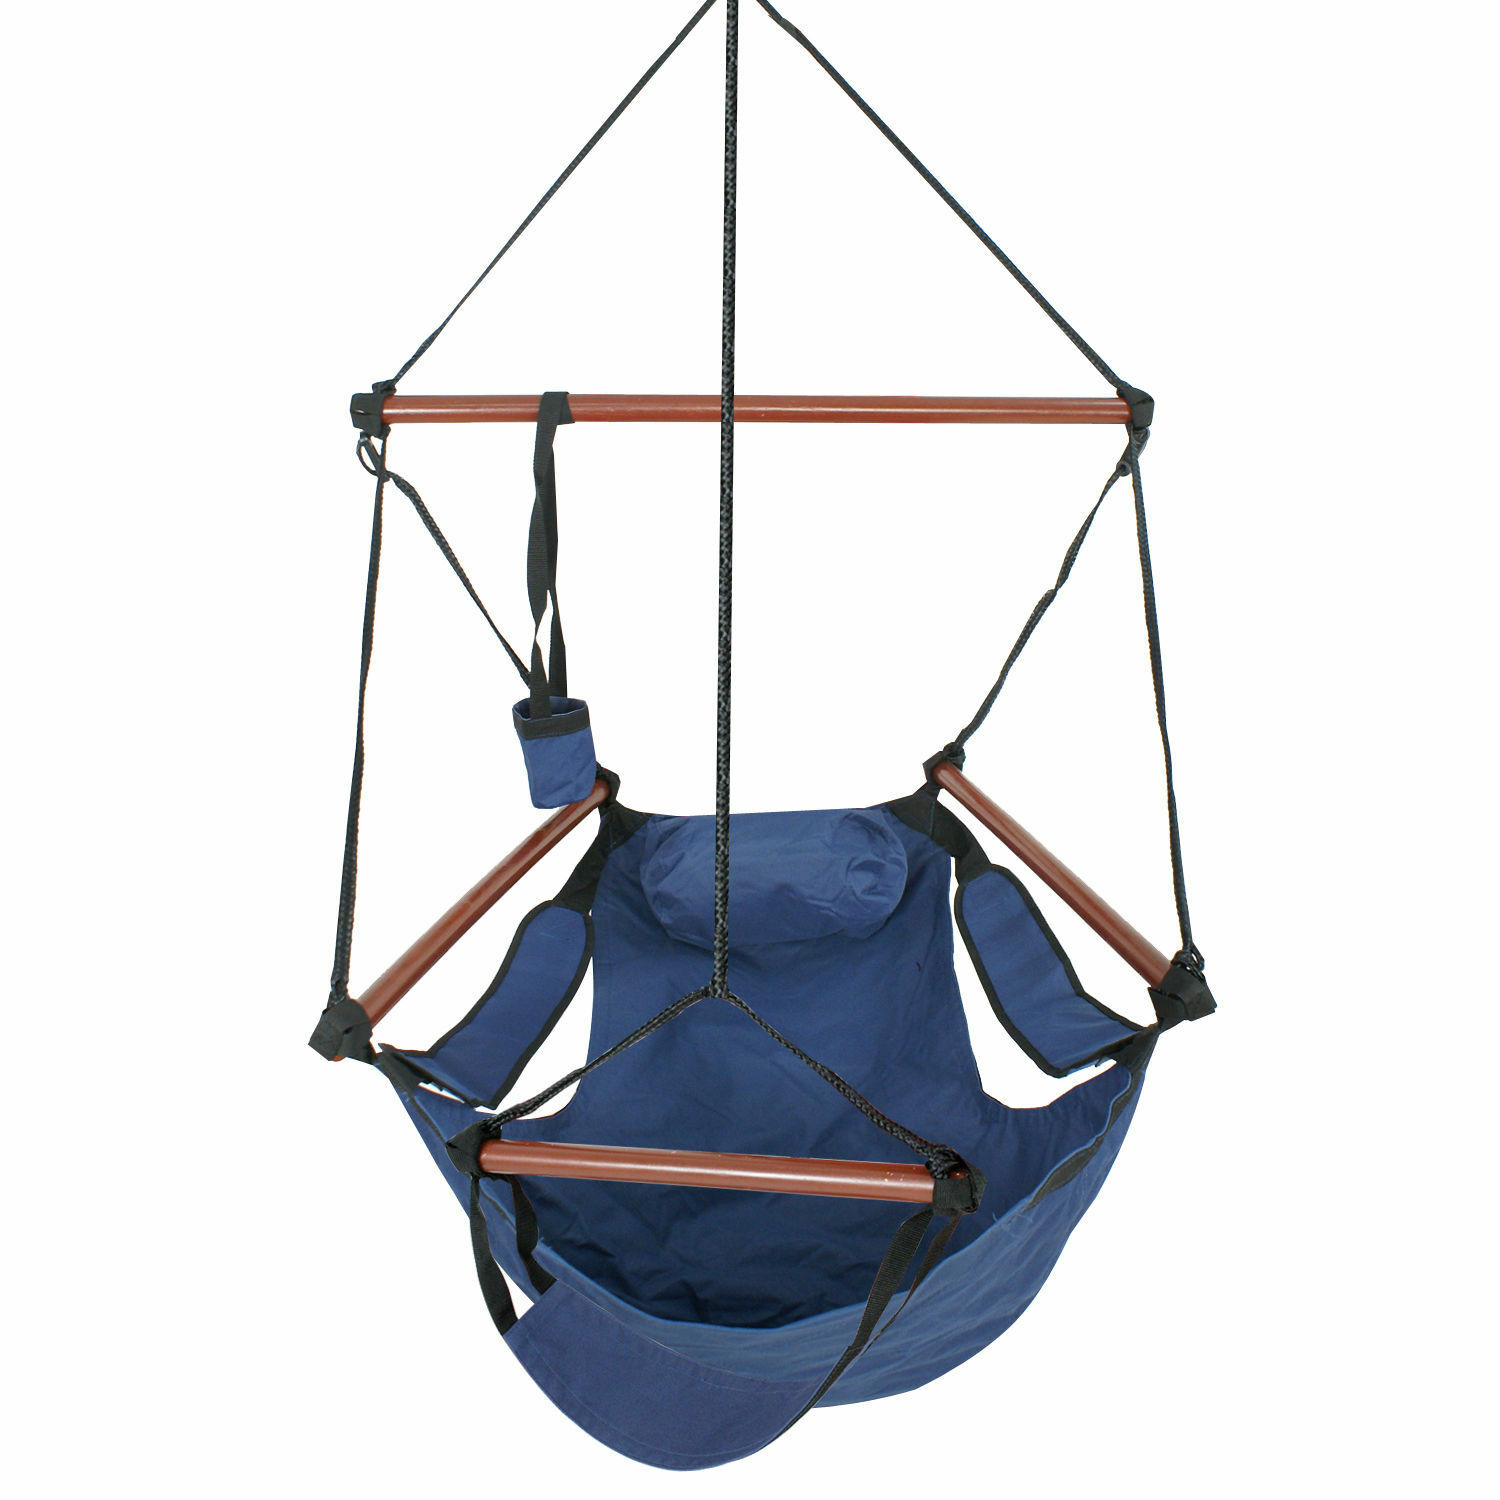 hanging chair wood ergonomic office singapore new deluxe hammock air sky indoor outdoor